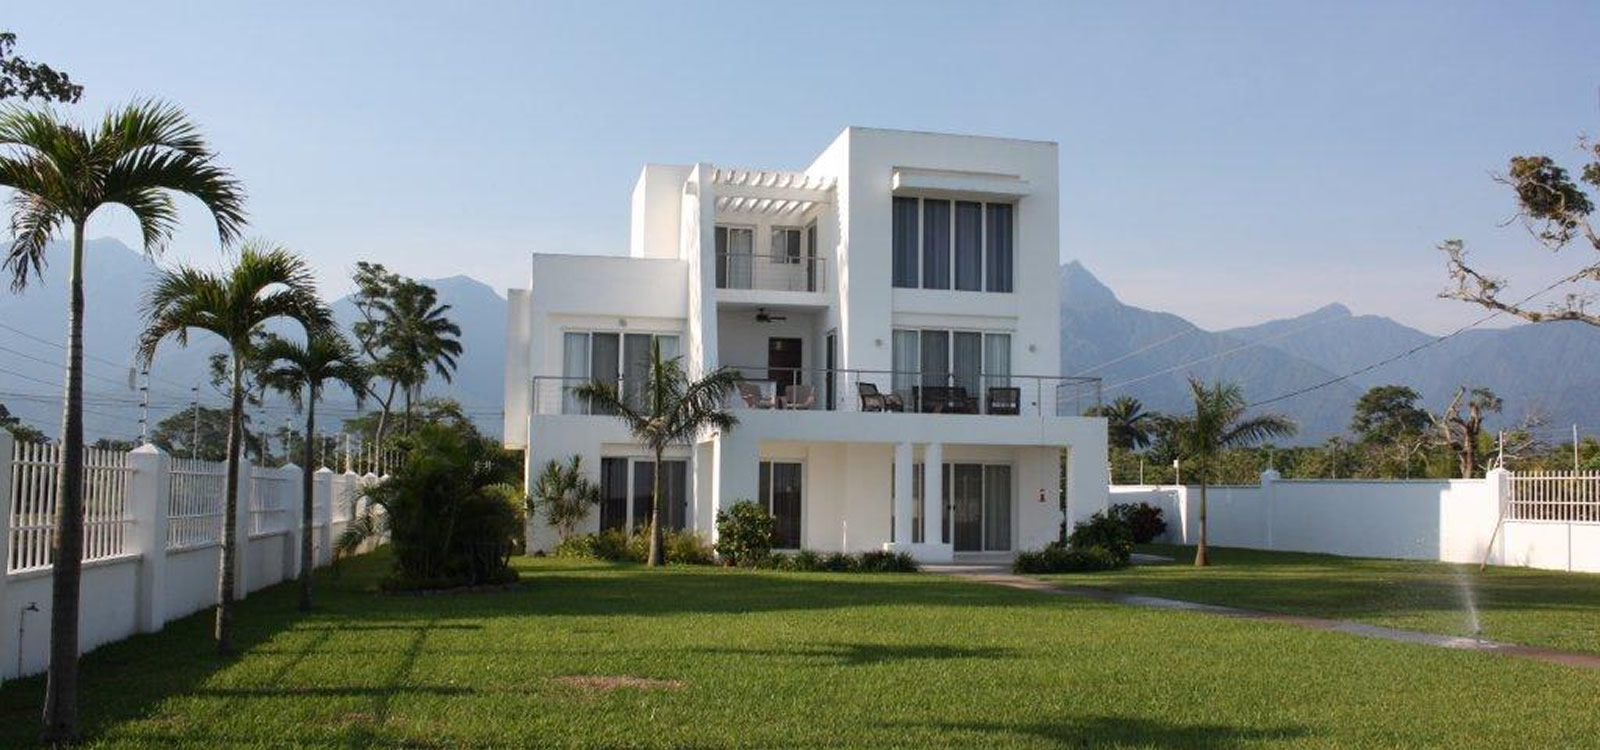 Commercial Property For Sale In The Caribbean Islands